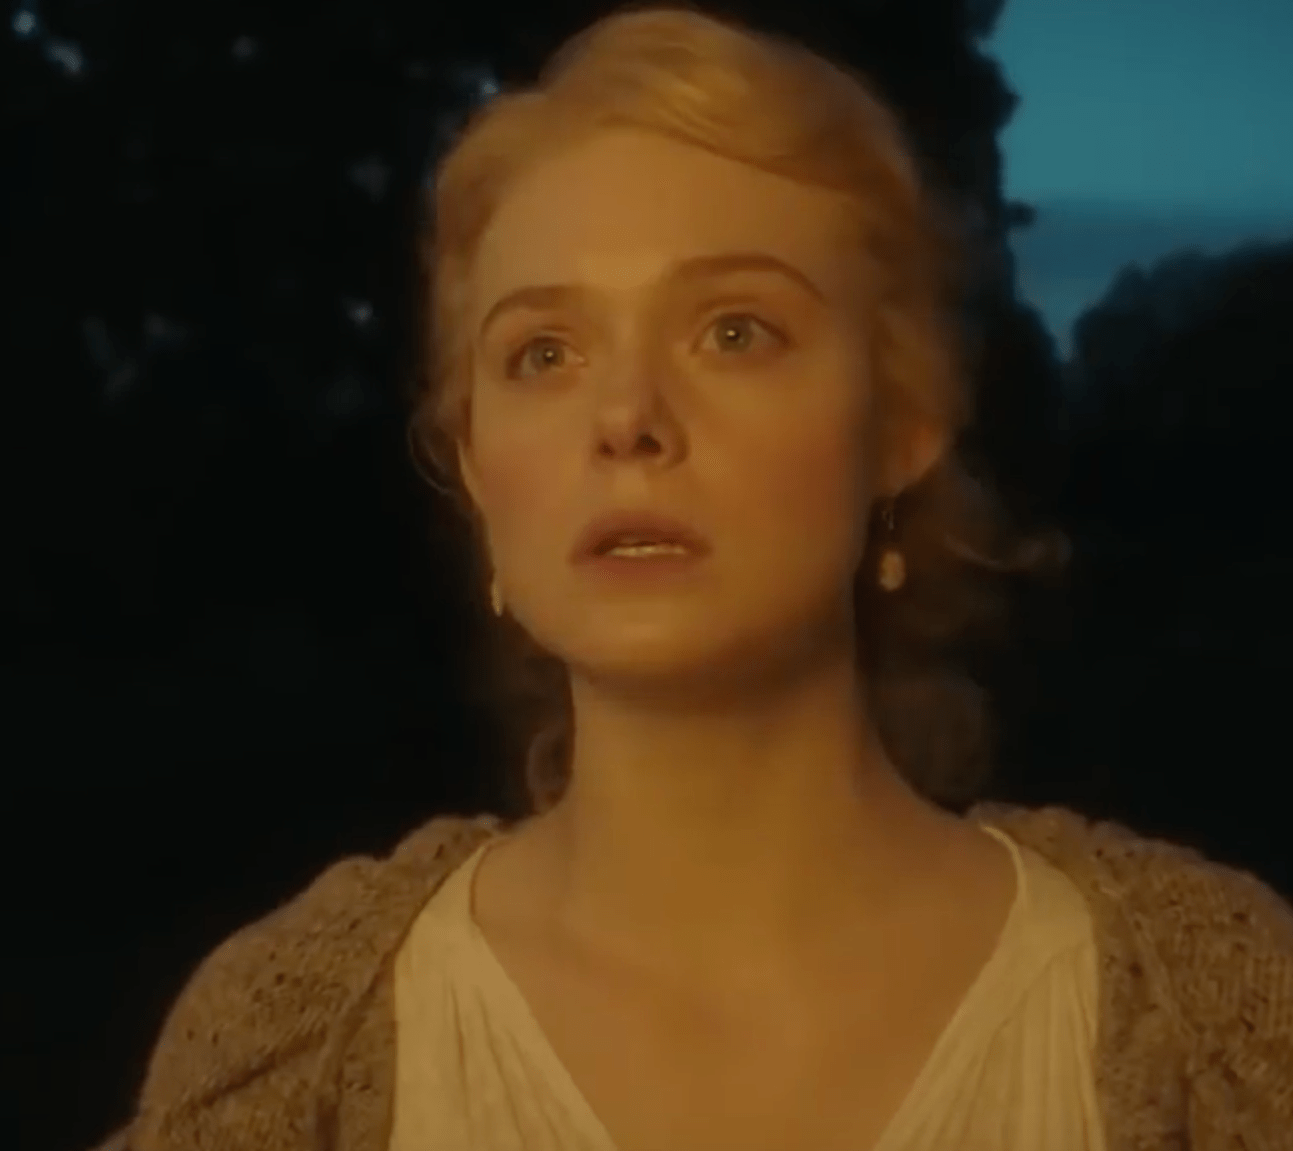 Elle Fanning as Catherine in the Great